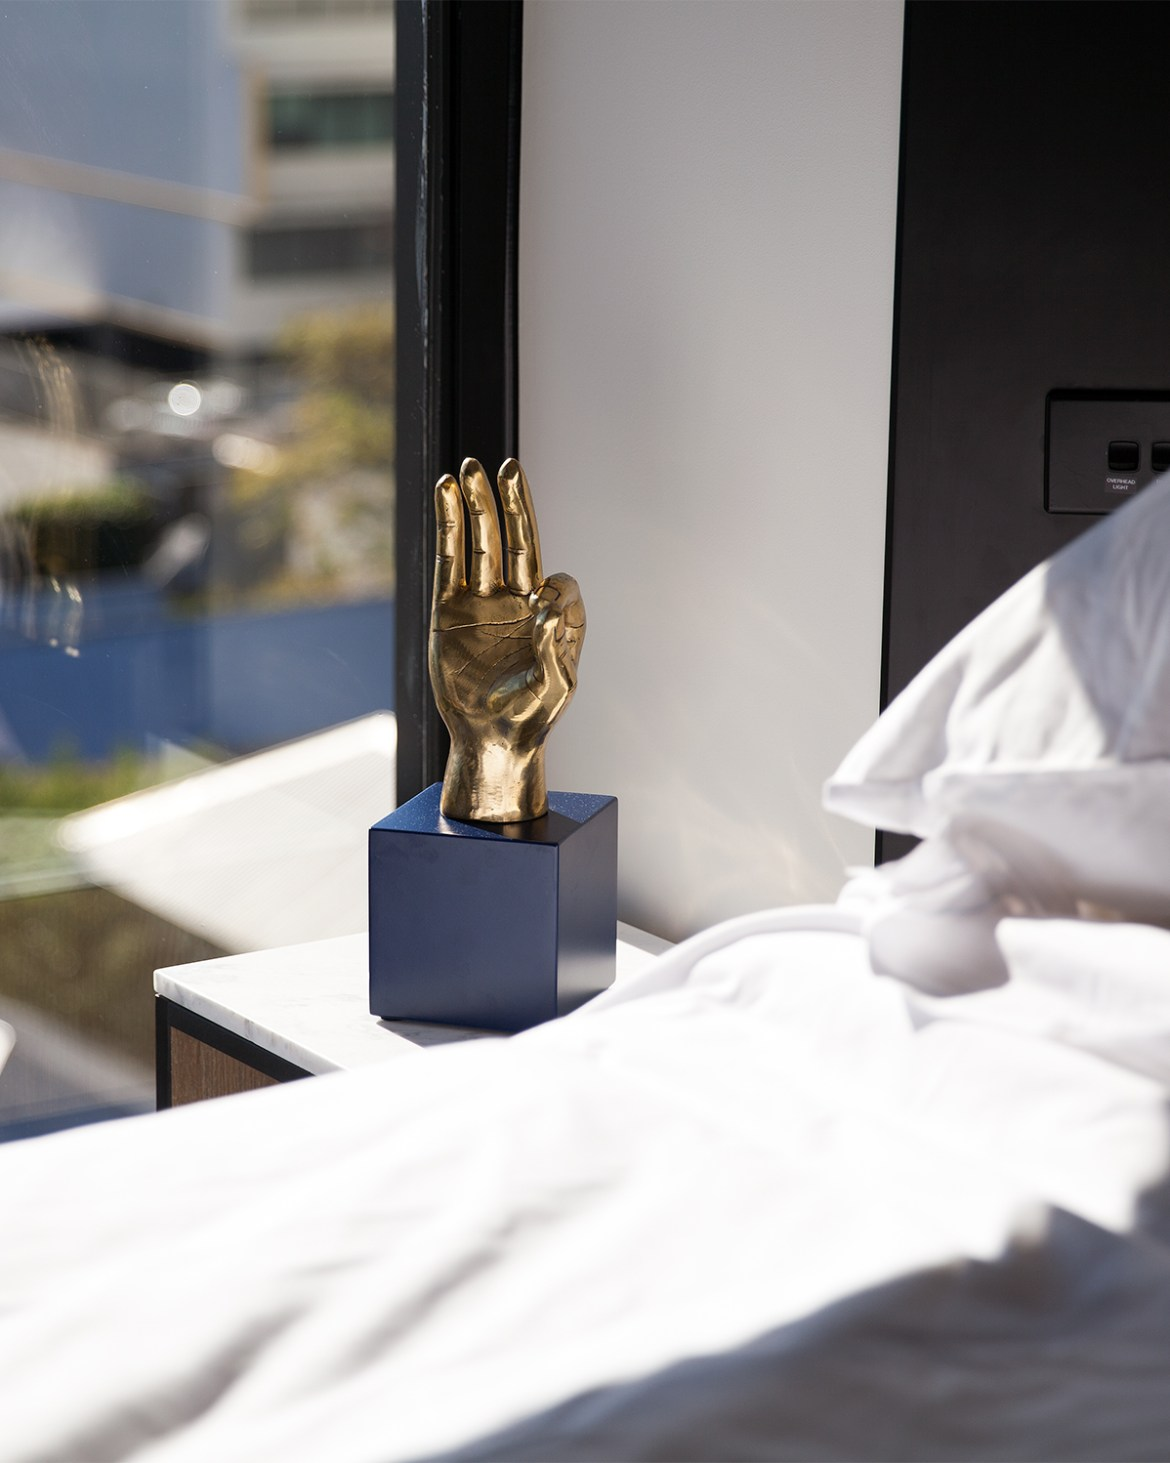 Tribe Hotel Perth brass sculpture, Jenelle from travel blog Inspiring Wit boutique hotel profile